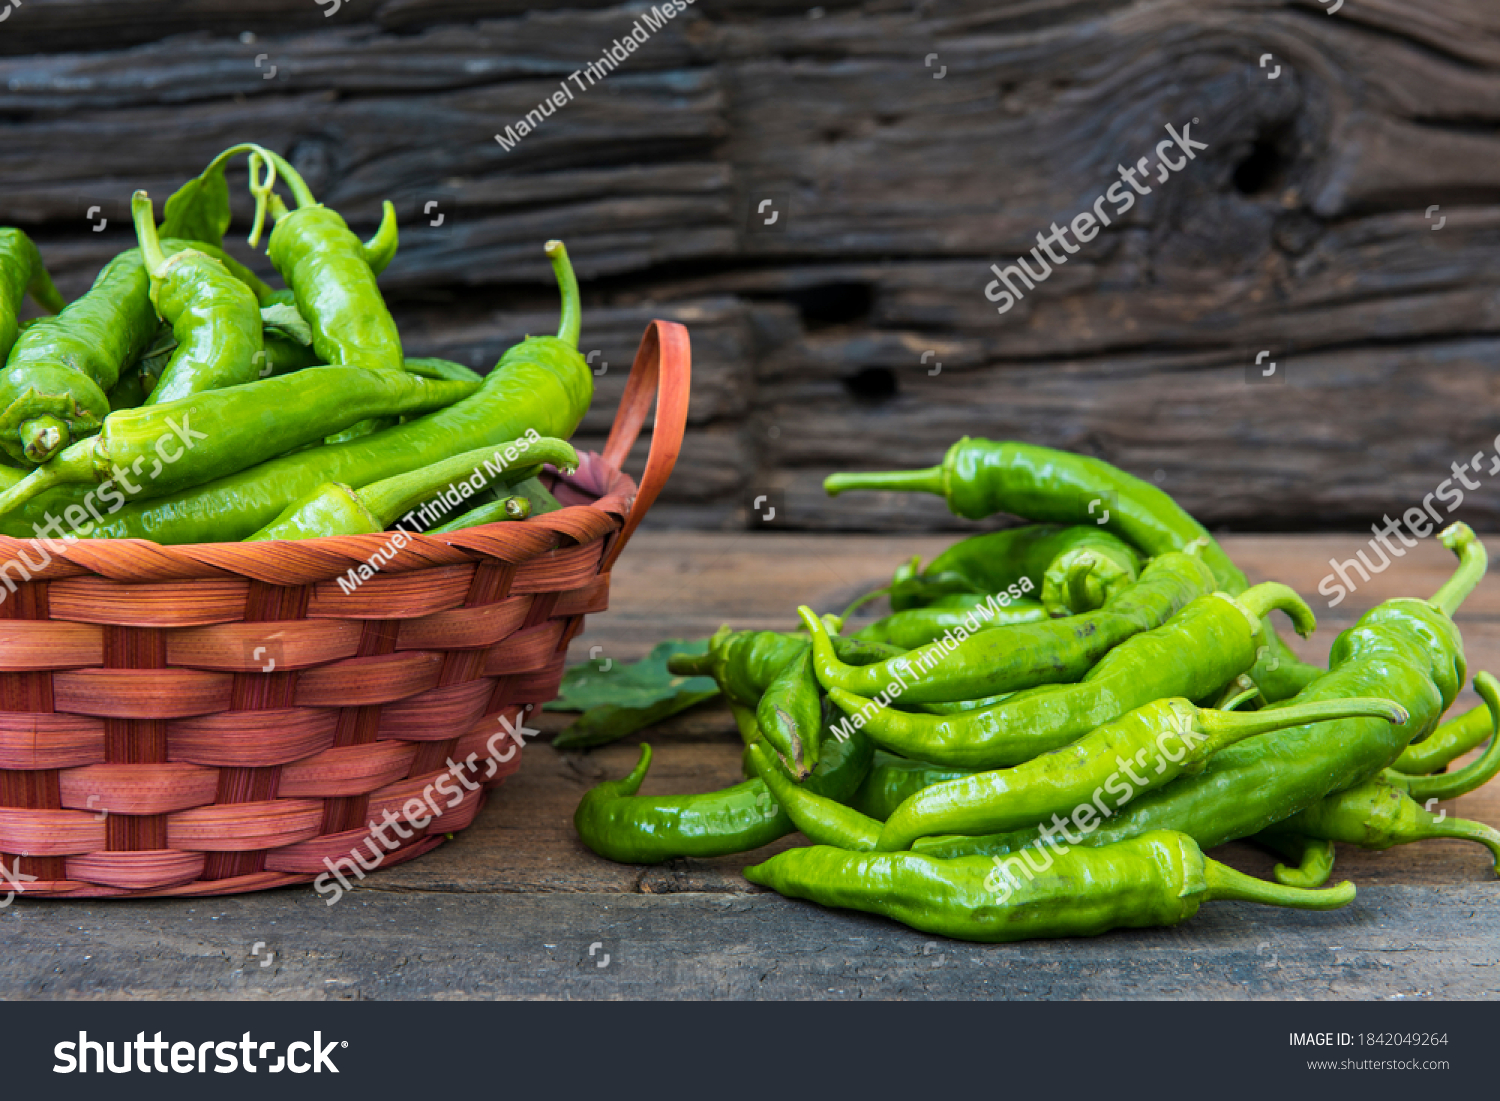 Green peppers in a basket and on the table, rustic wooden background